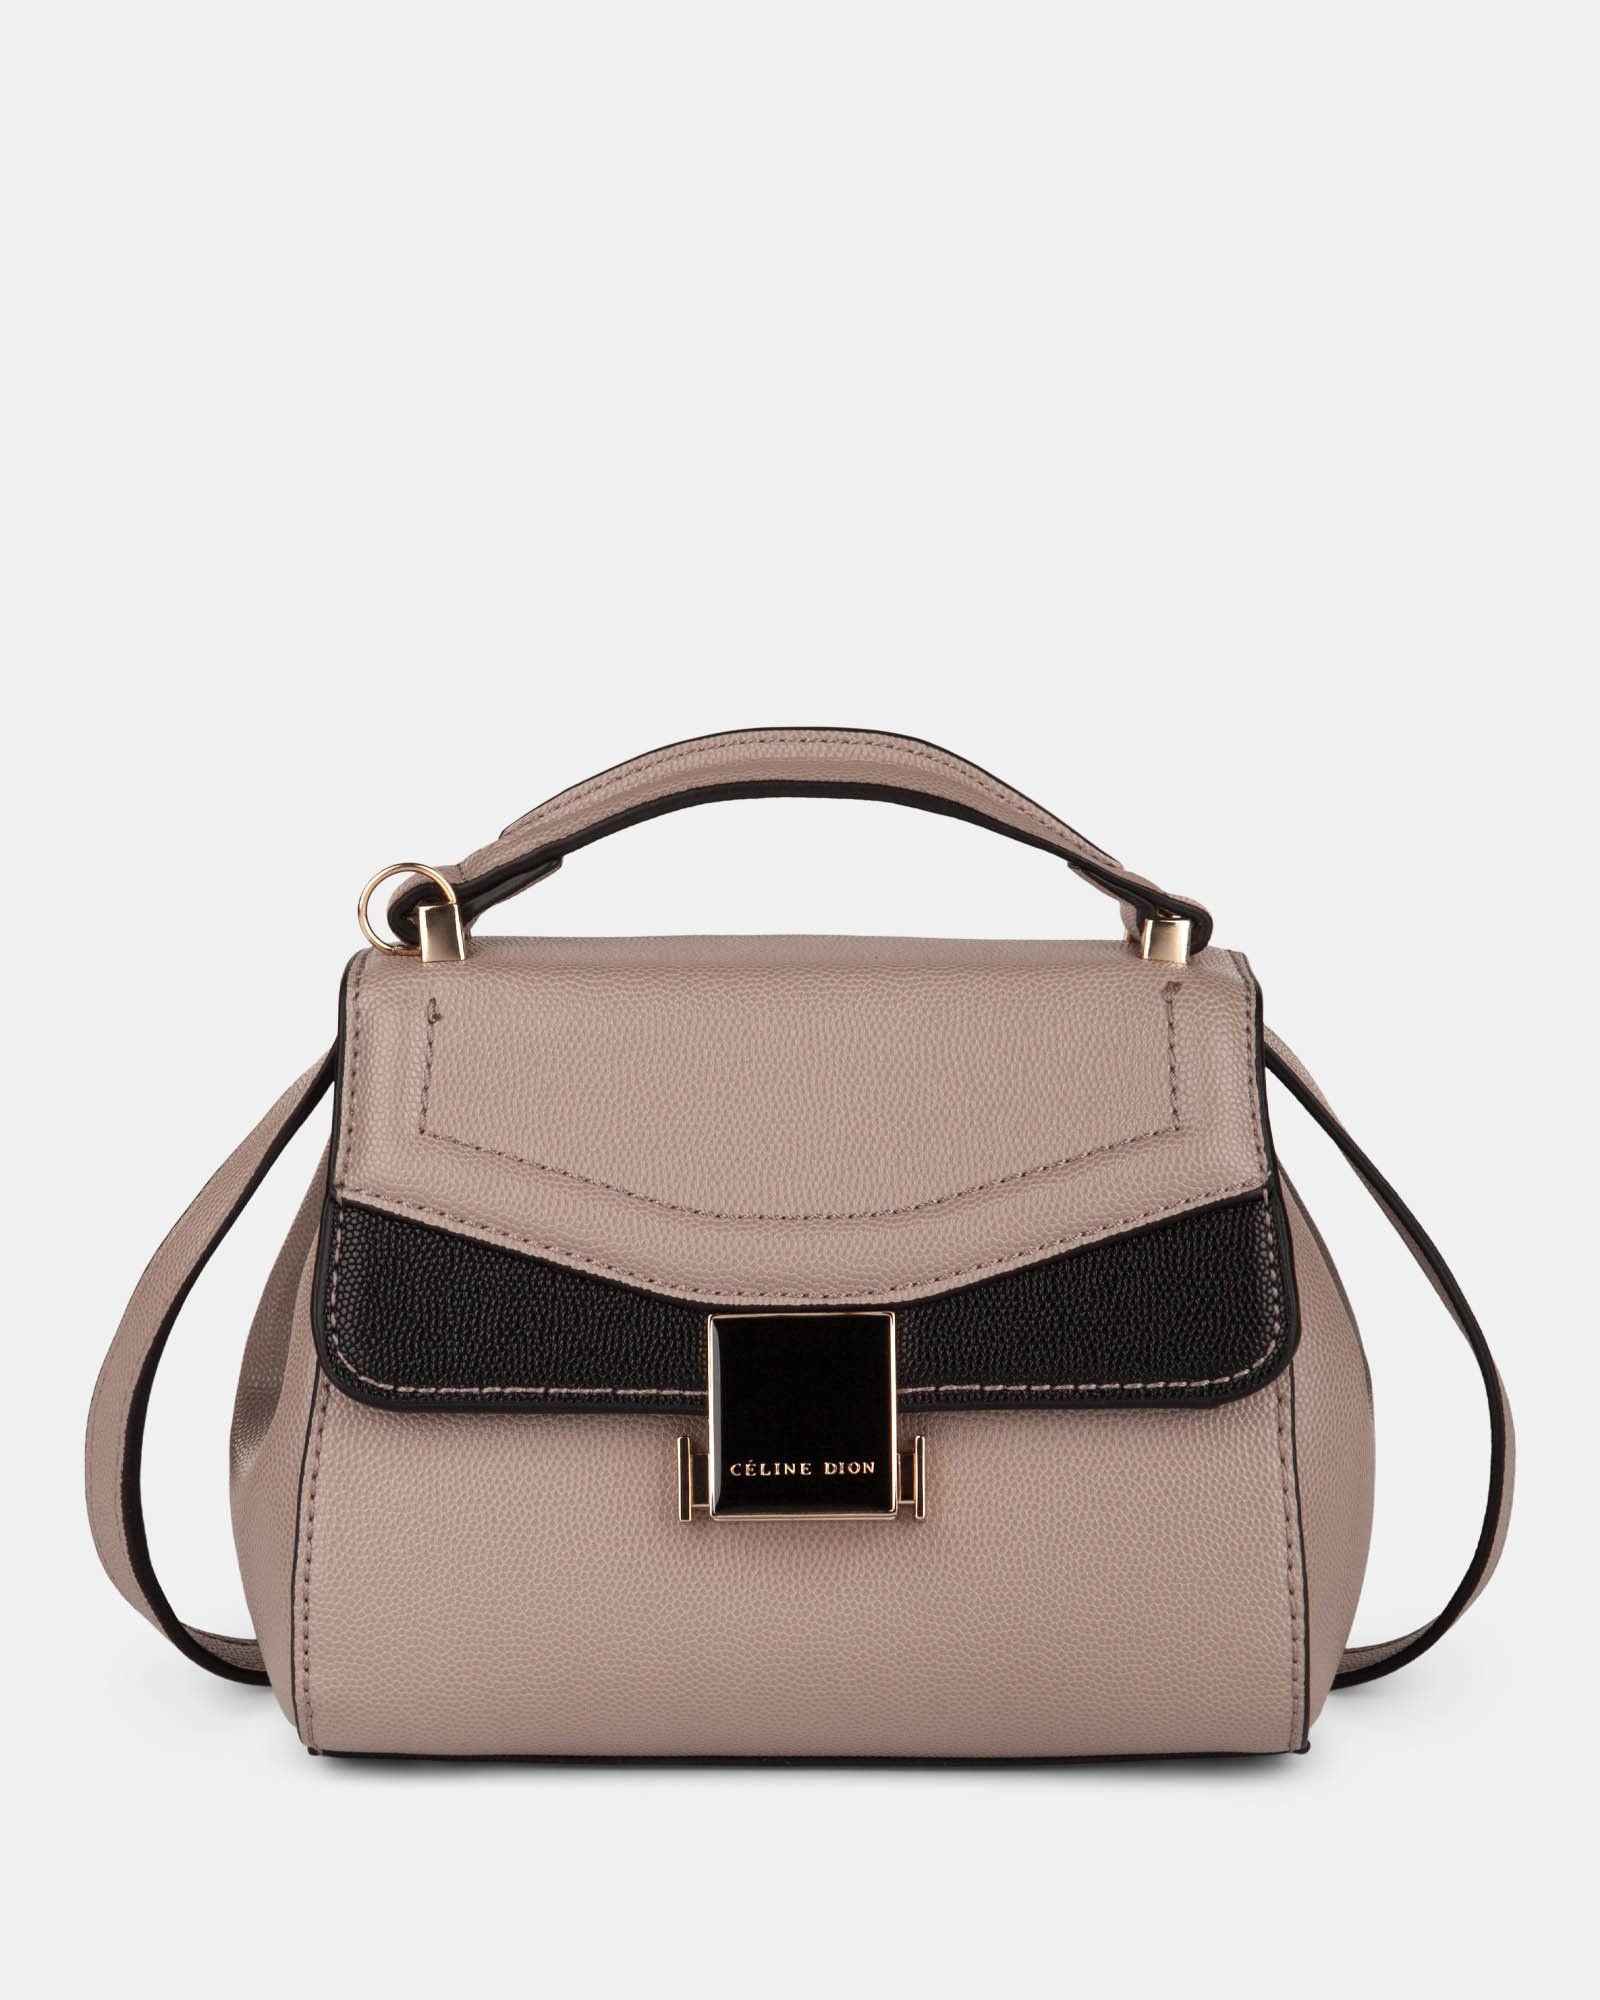 Scale – Small Handle bag with interior zippered pocket - Nude - Céline Dion - Zoom